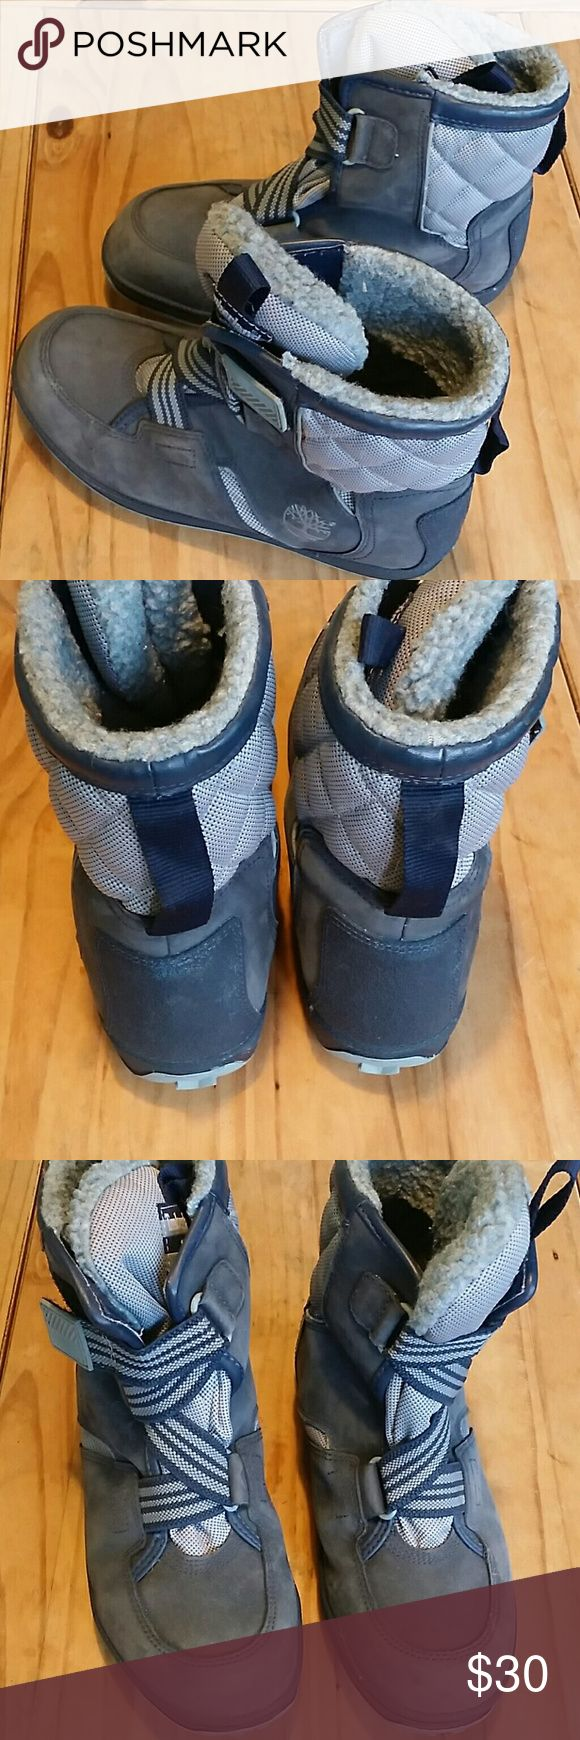 Timberland Winter Boots Waterproof winter boots by Timberland   Size Conversion:  Kids size 6 converts to women's size 8 Timberland Shoes Rain & Snow Boots